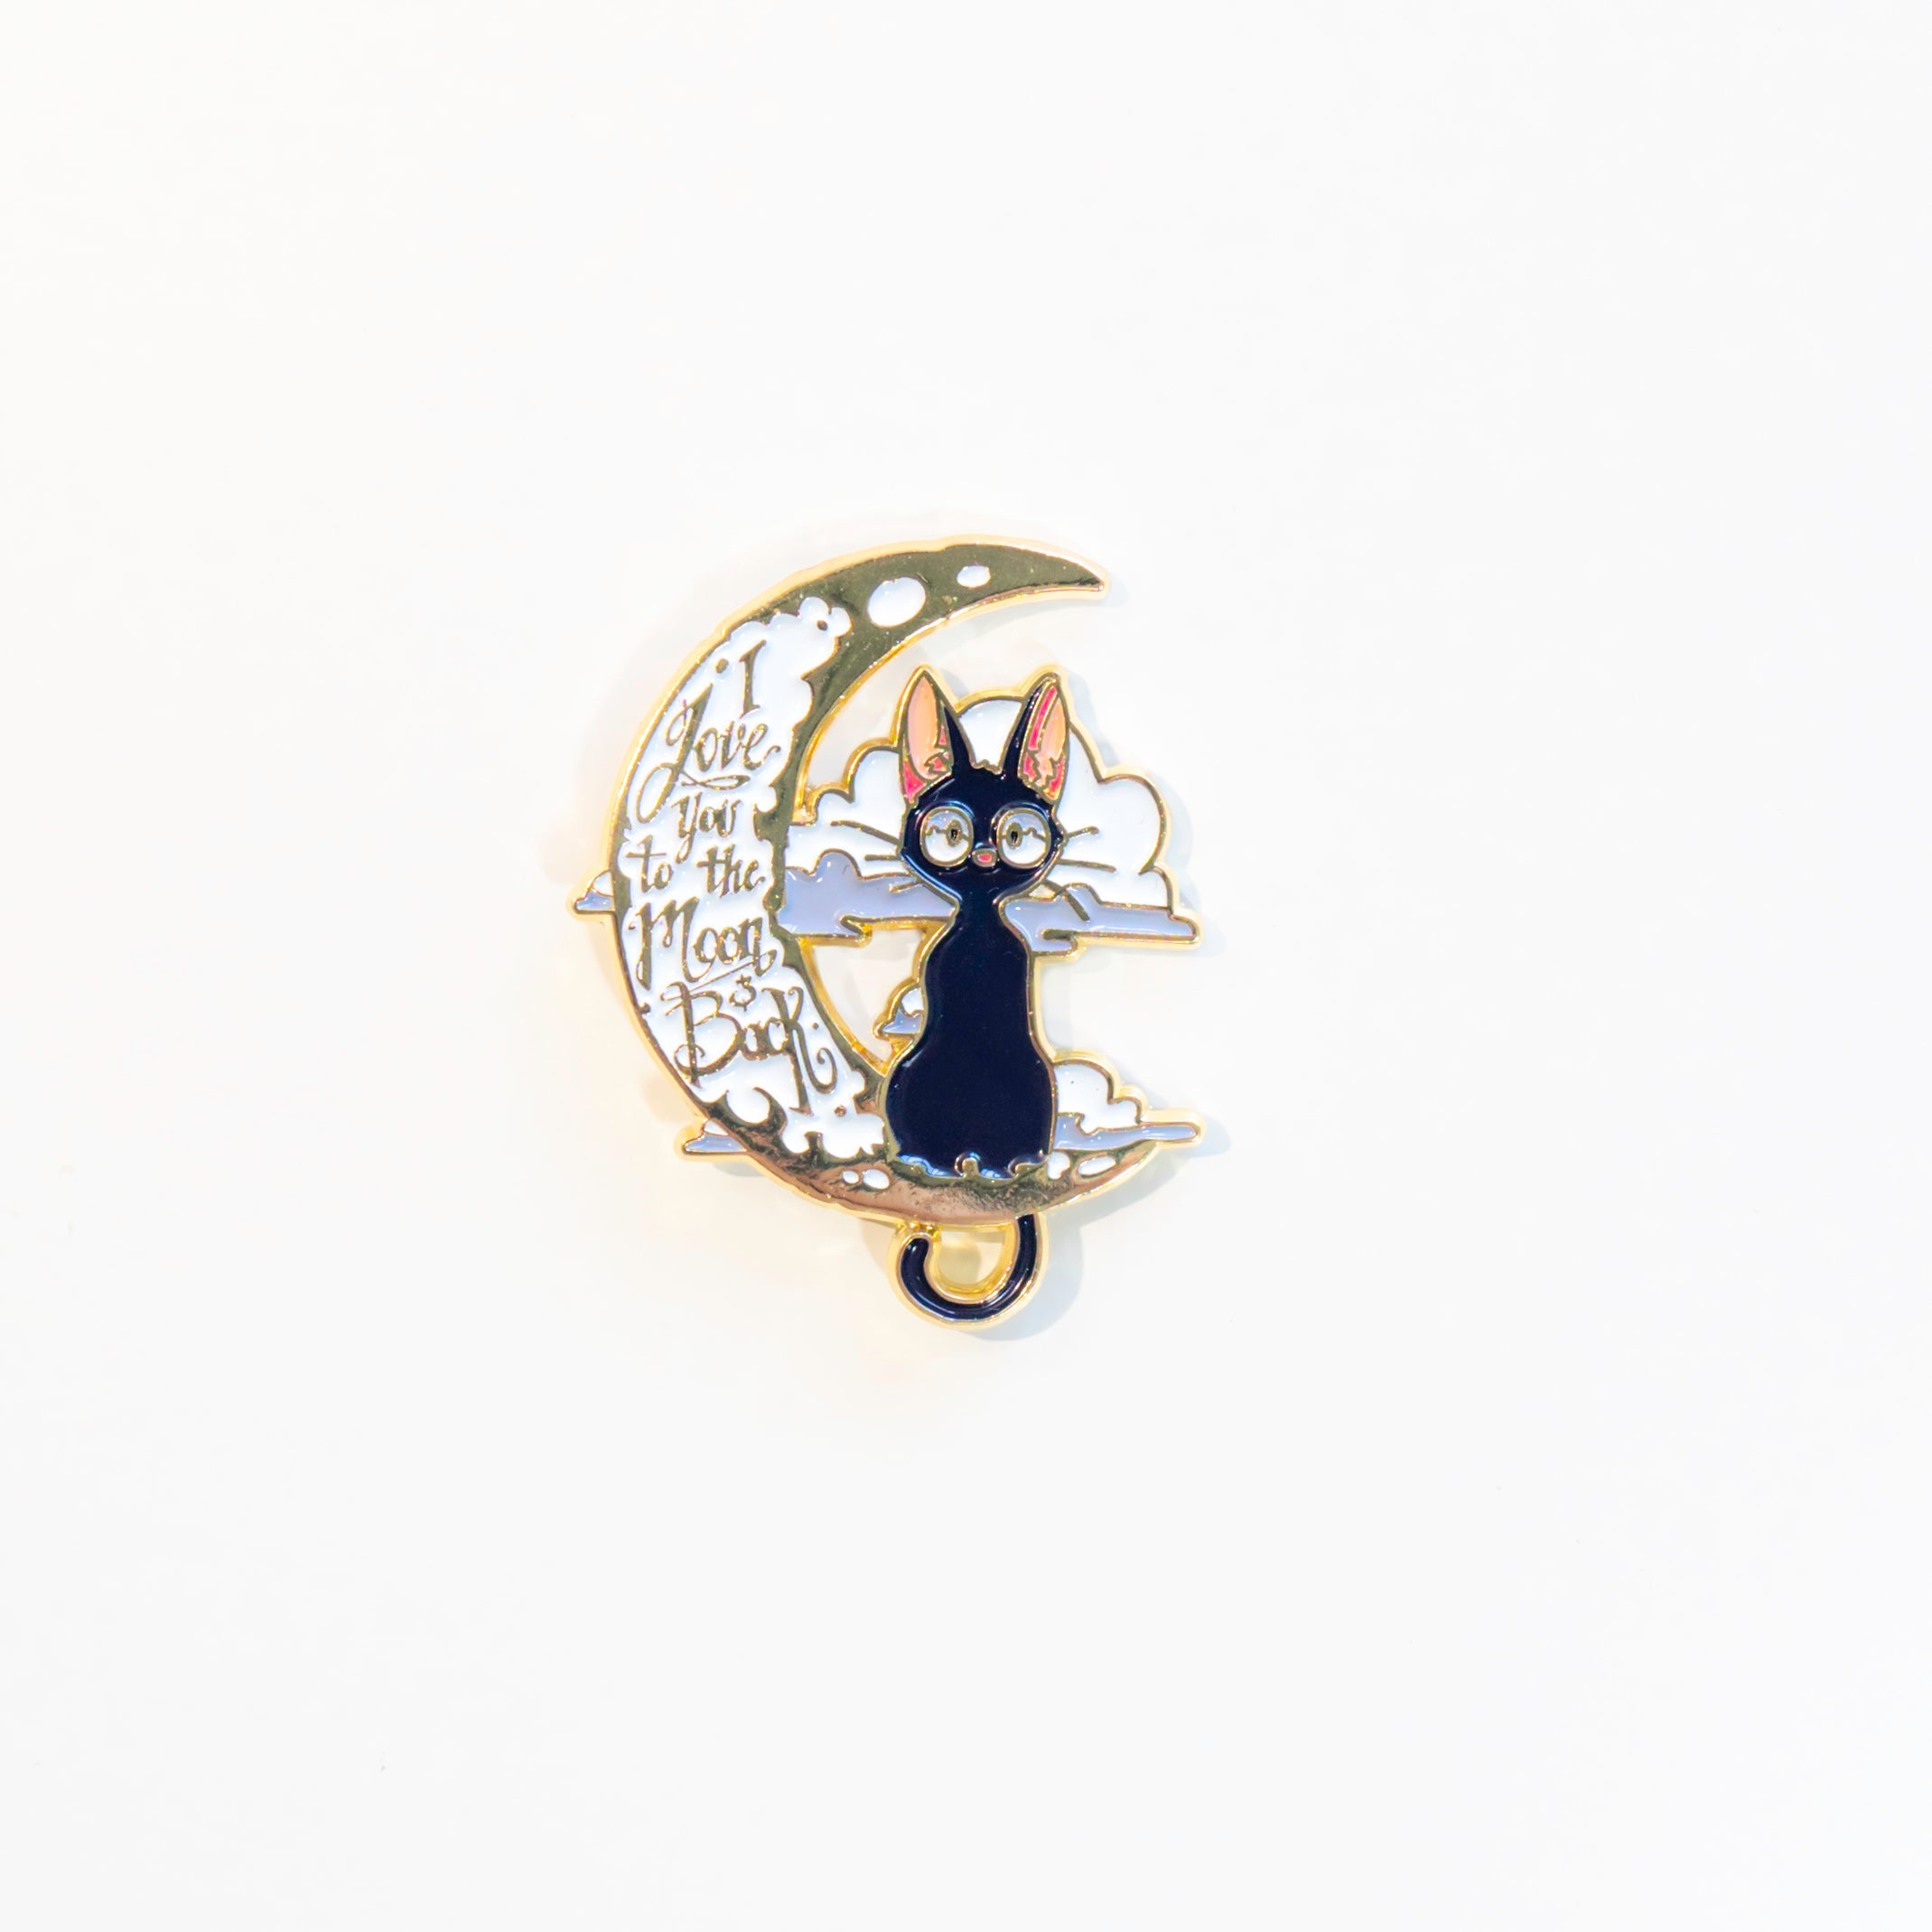 I LOVE YOU TO THE MOON & BACK PIN